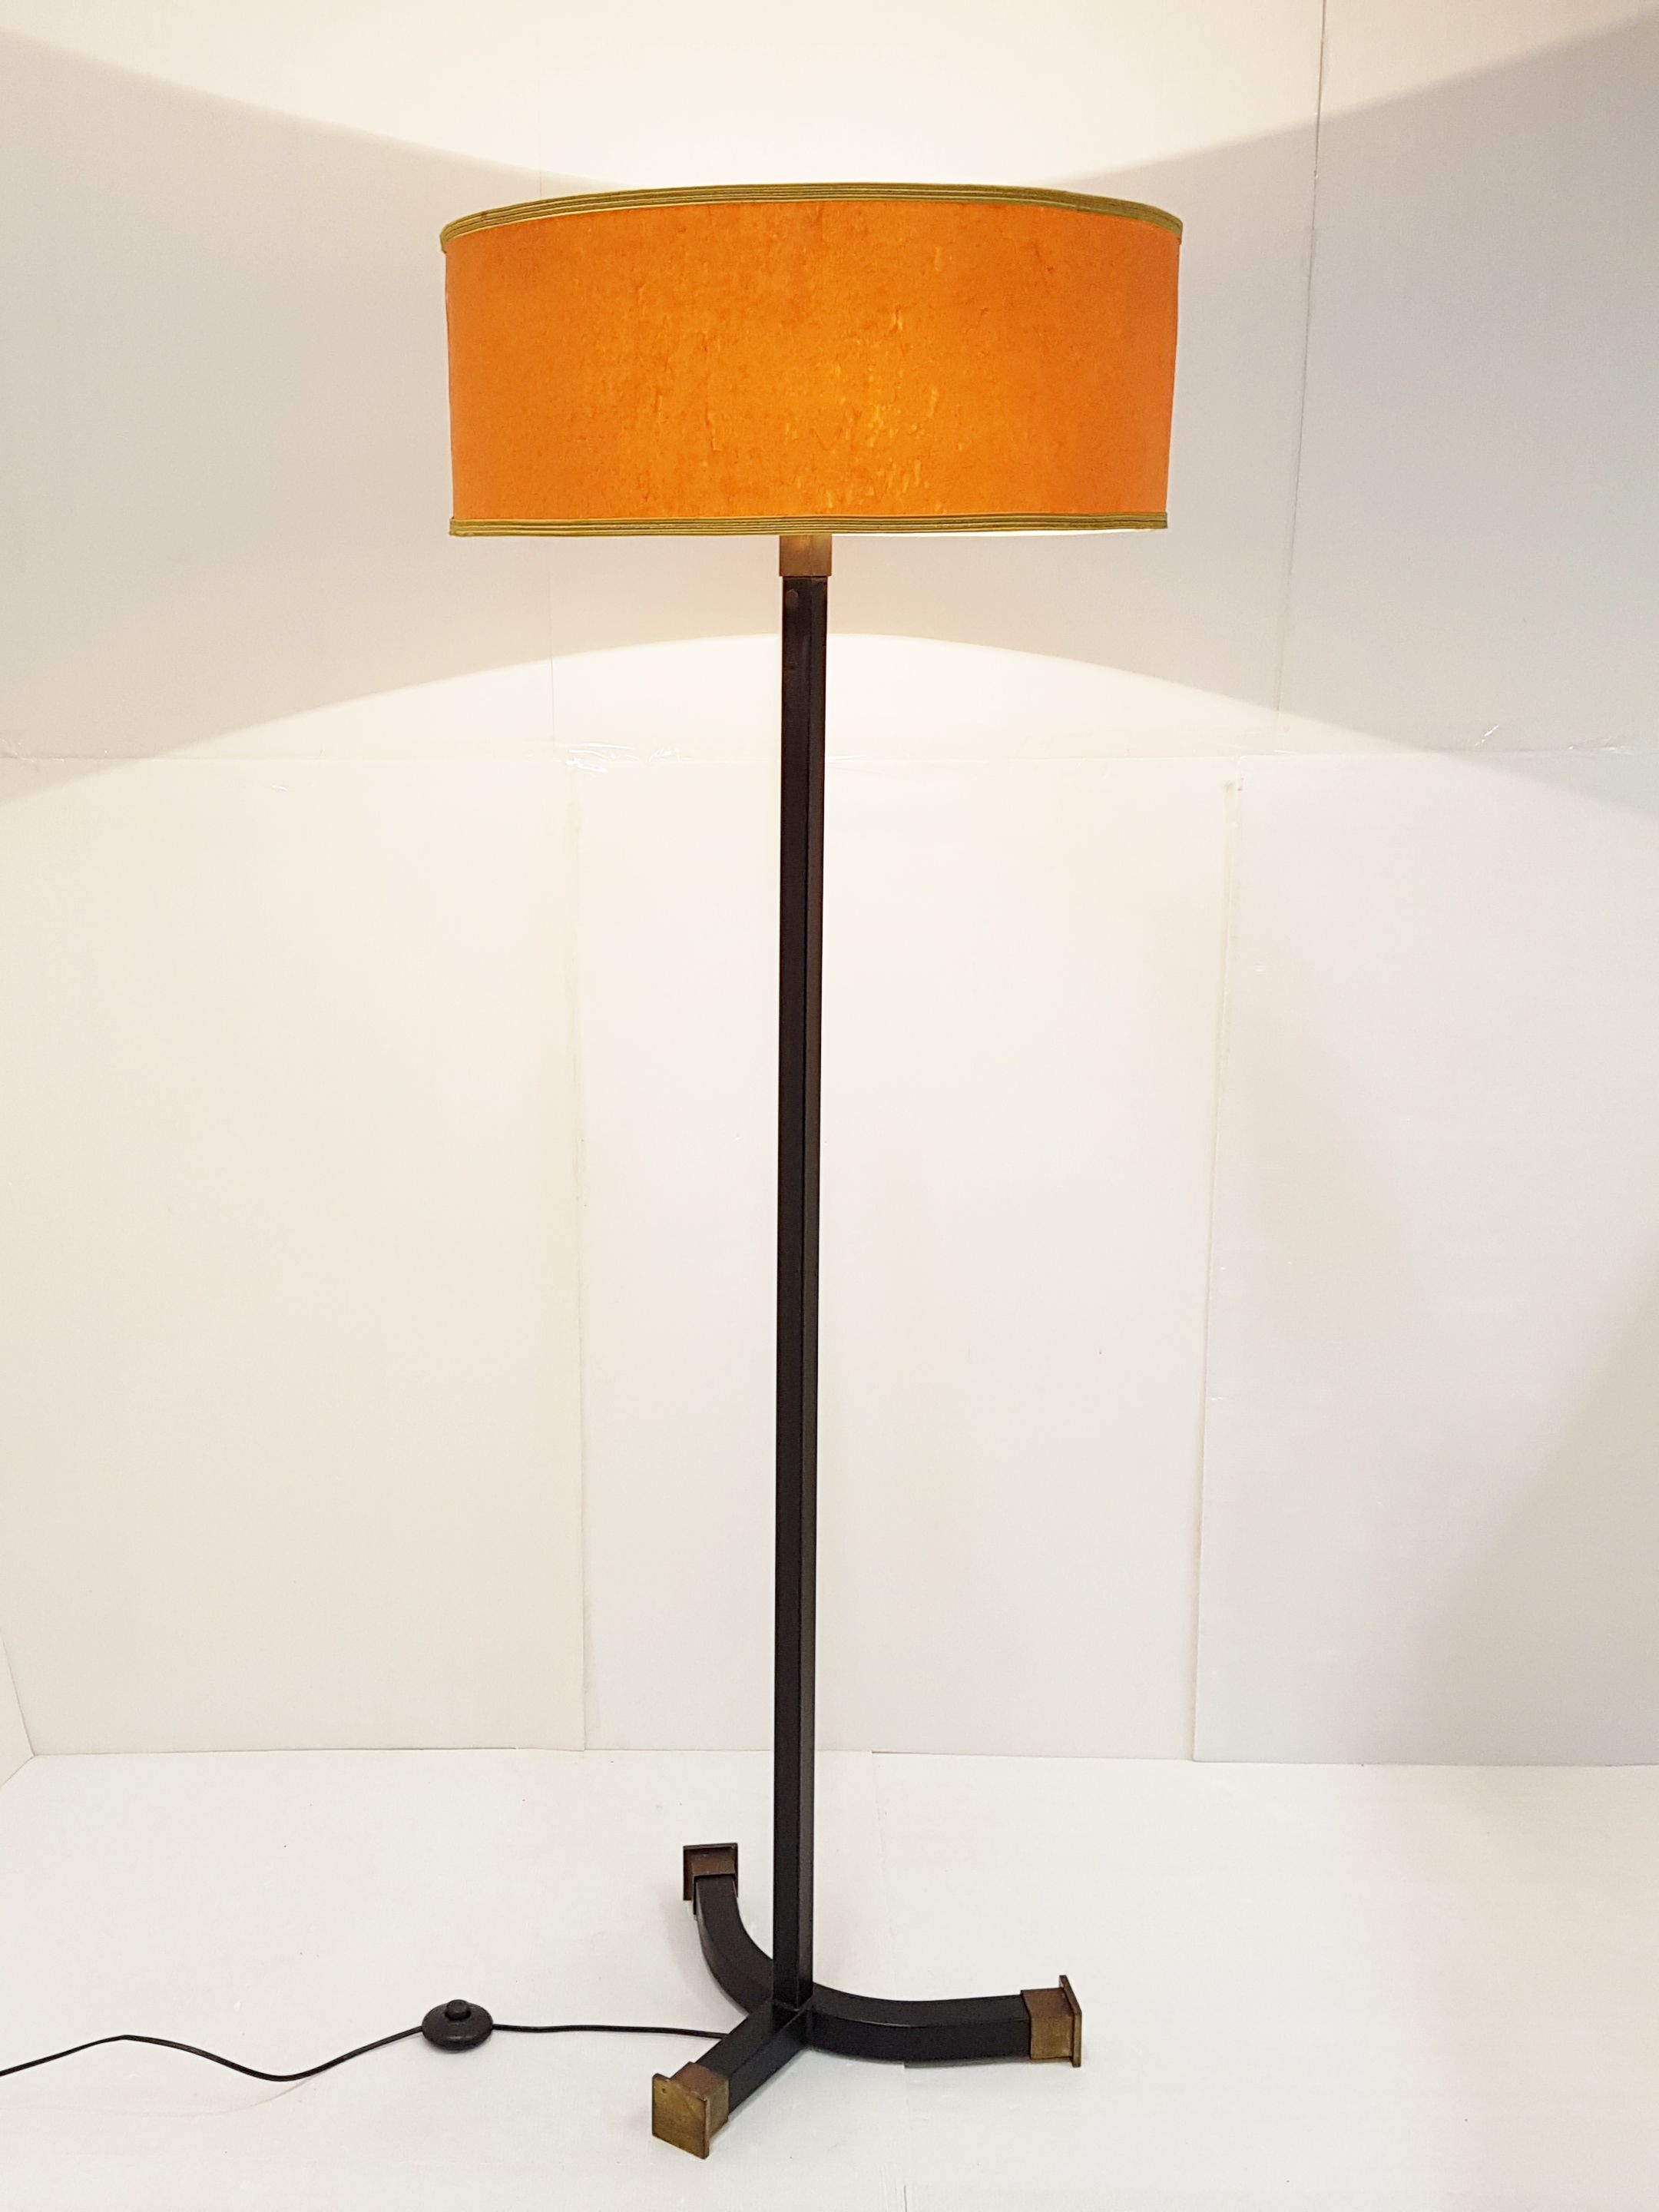 Vintage French Floor Lamp With Orange Shade 1960 throughout sizing 2160 X 2880